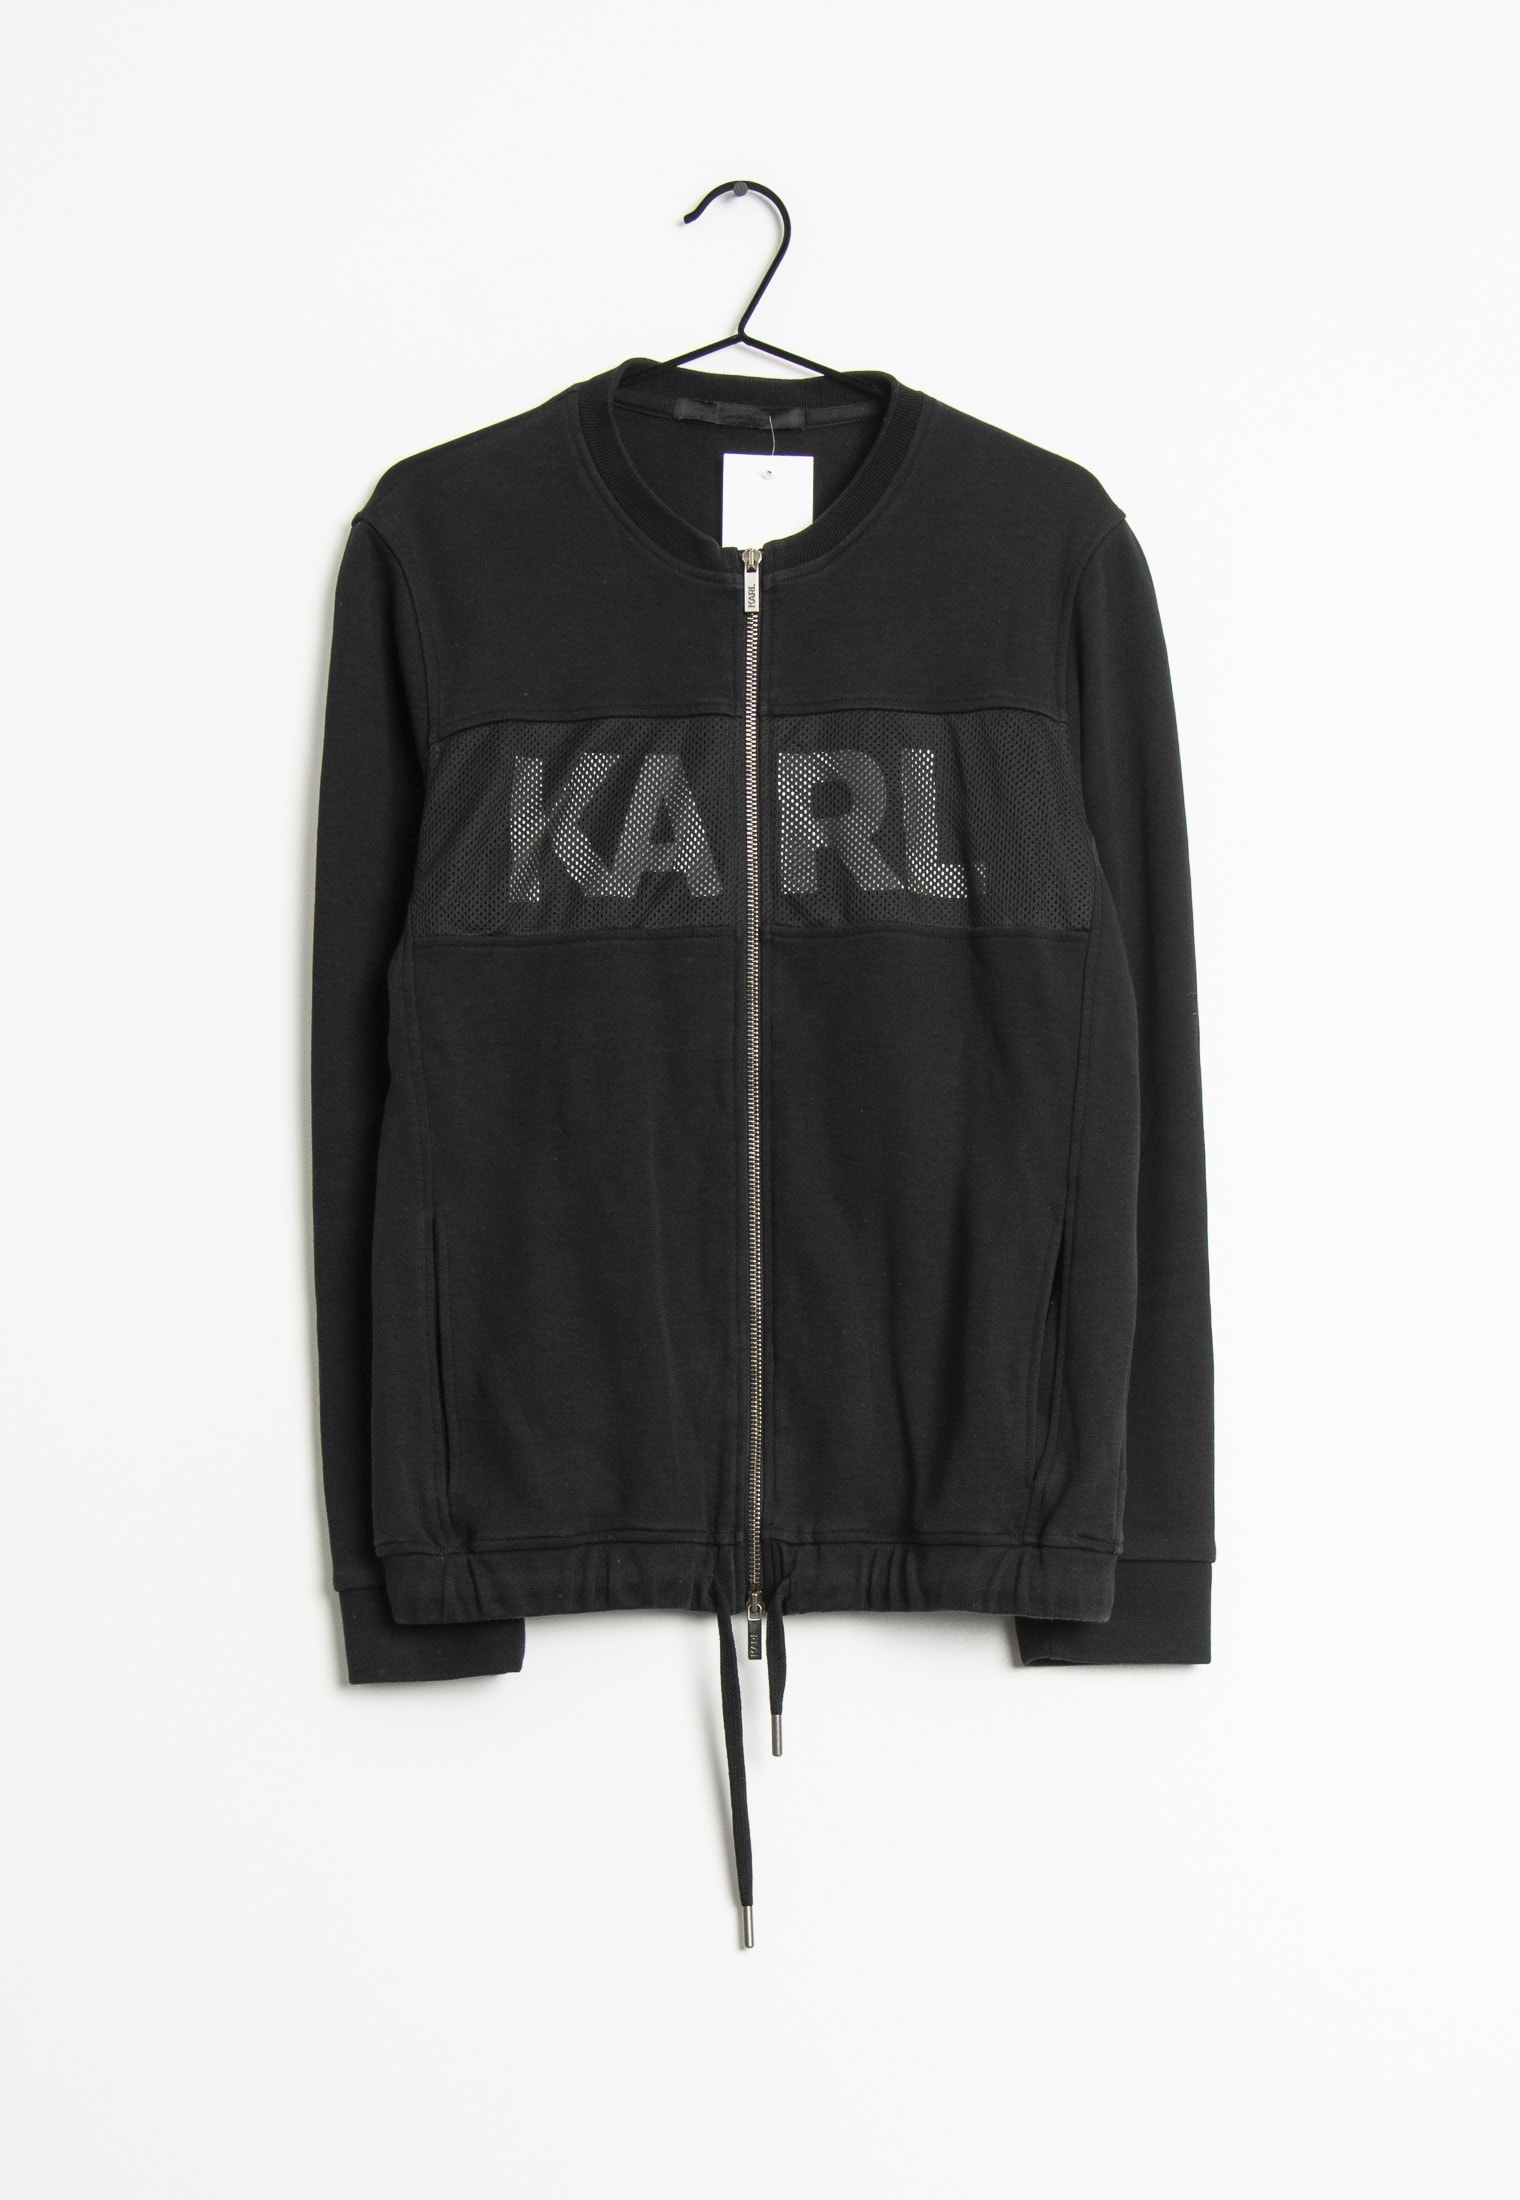 KARL LAGERFELD Sweat / Fleece Schwarz Gr.M